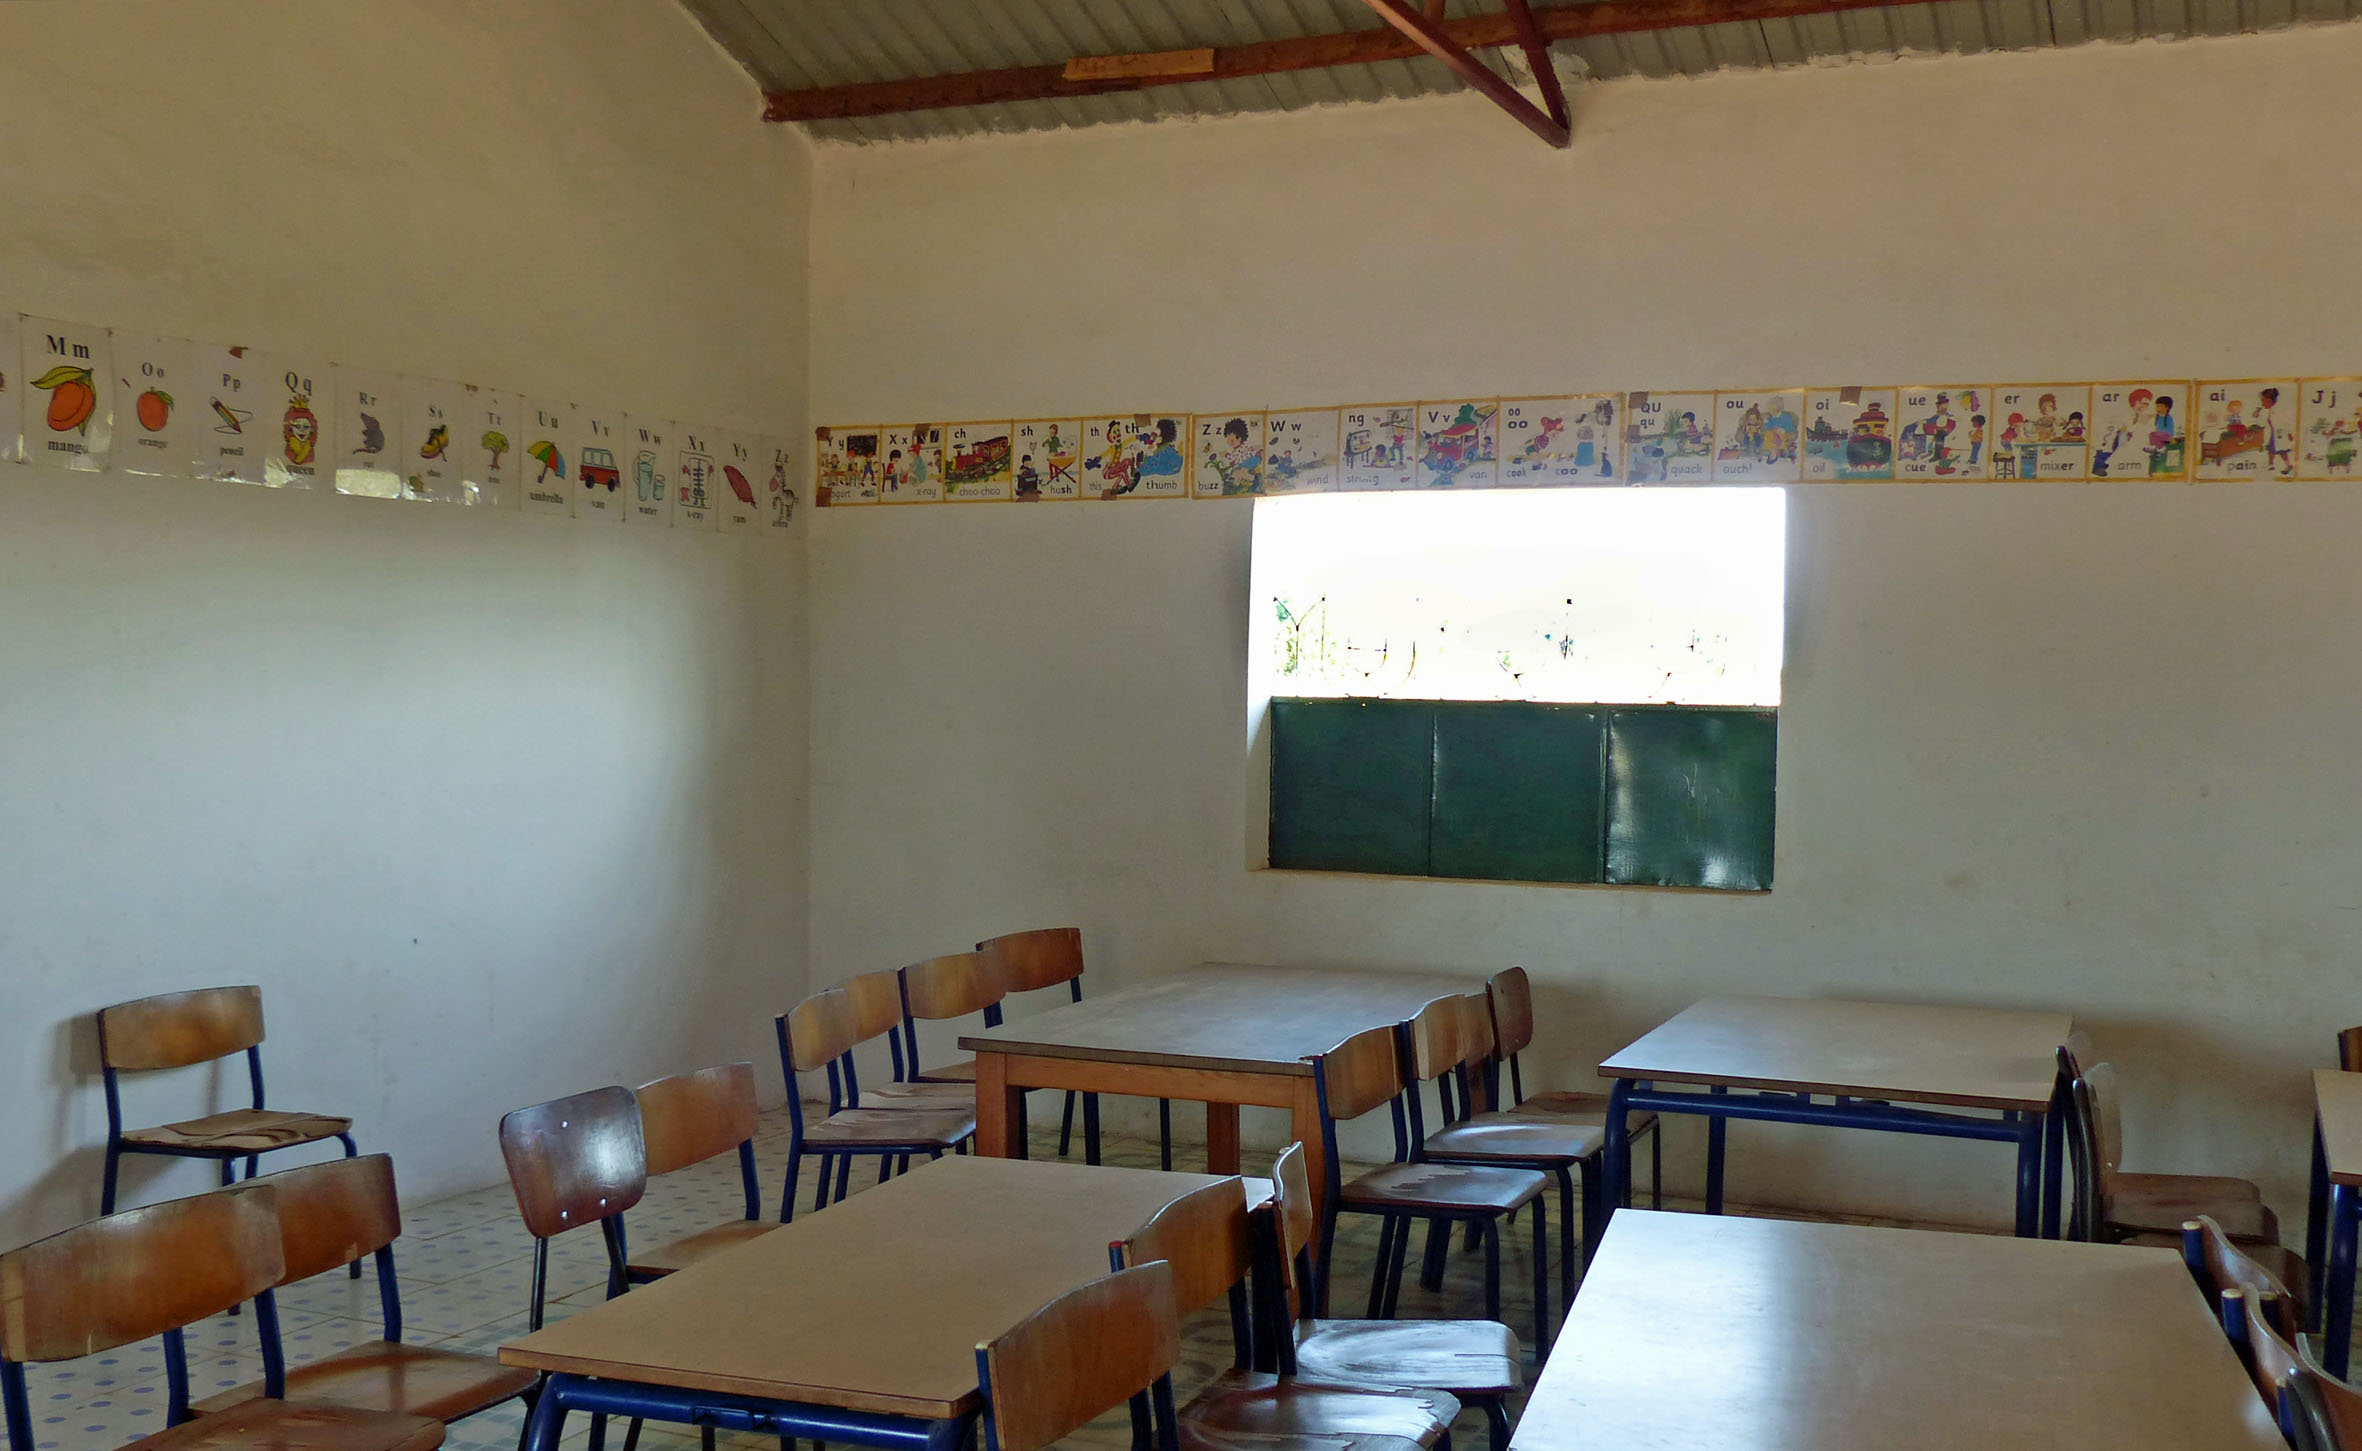 Classroom with wooden desks and chairs